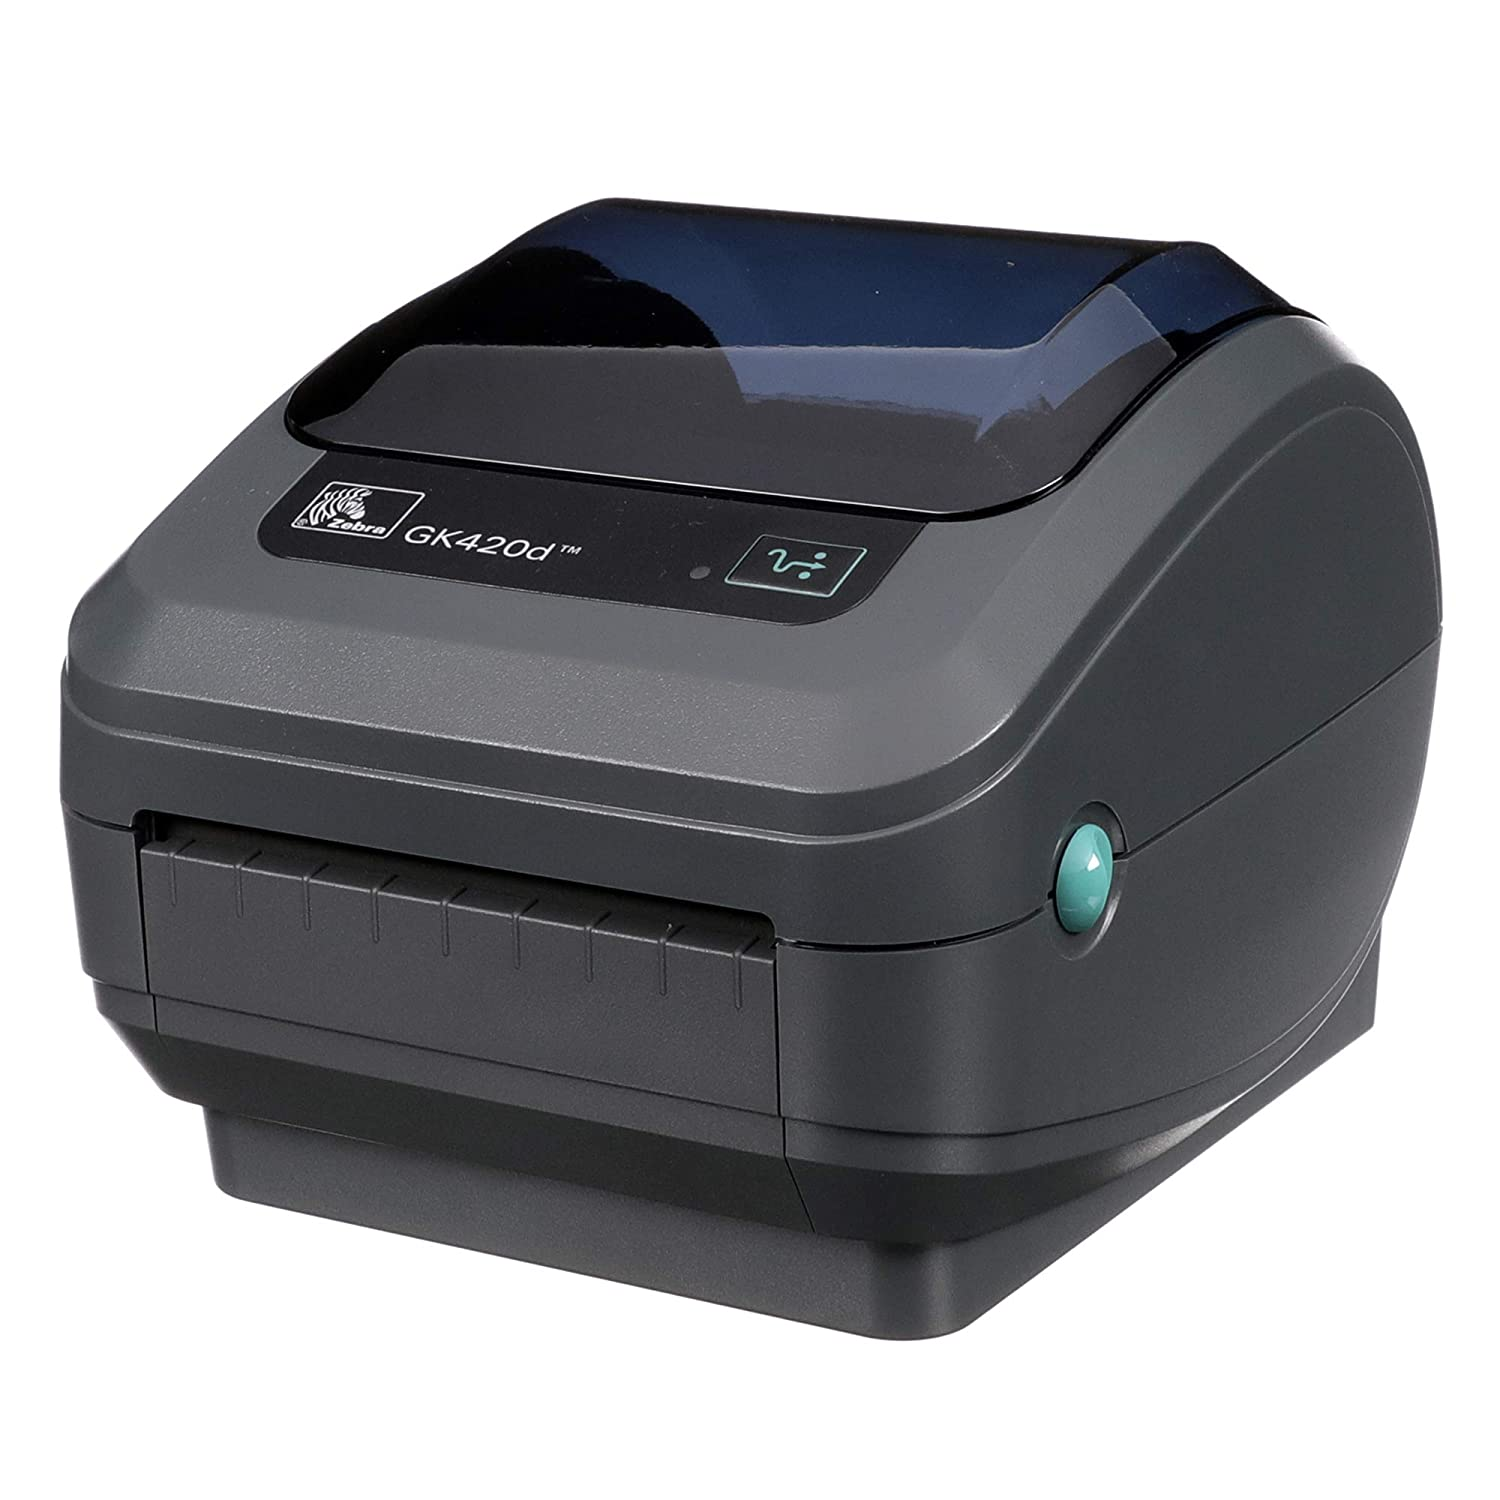 Zebra - GK420d Direct Thermal Desktop Printer for Labels, Receipts, Barcodes, Tags, and Wrist Bands - Print Width of 4 in - USB, Serial, and Parallel ...